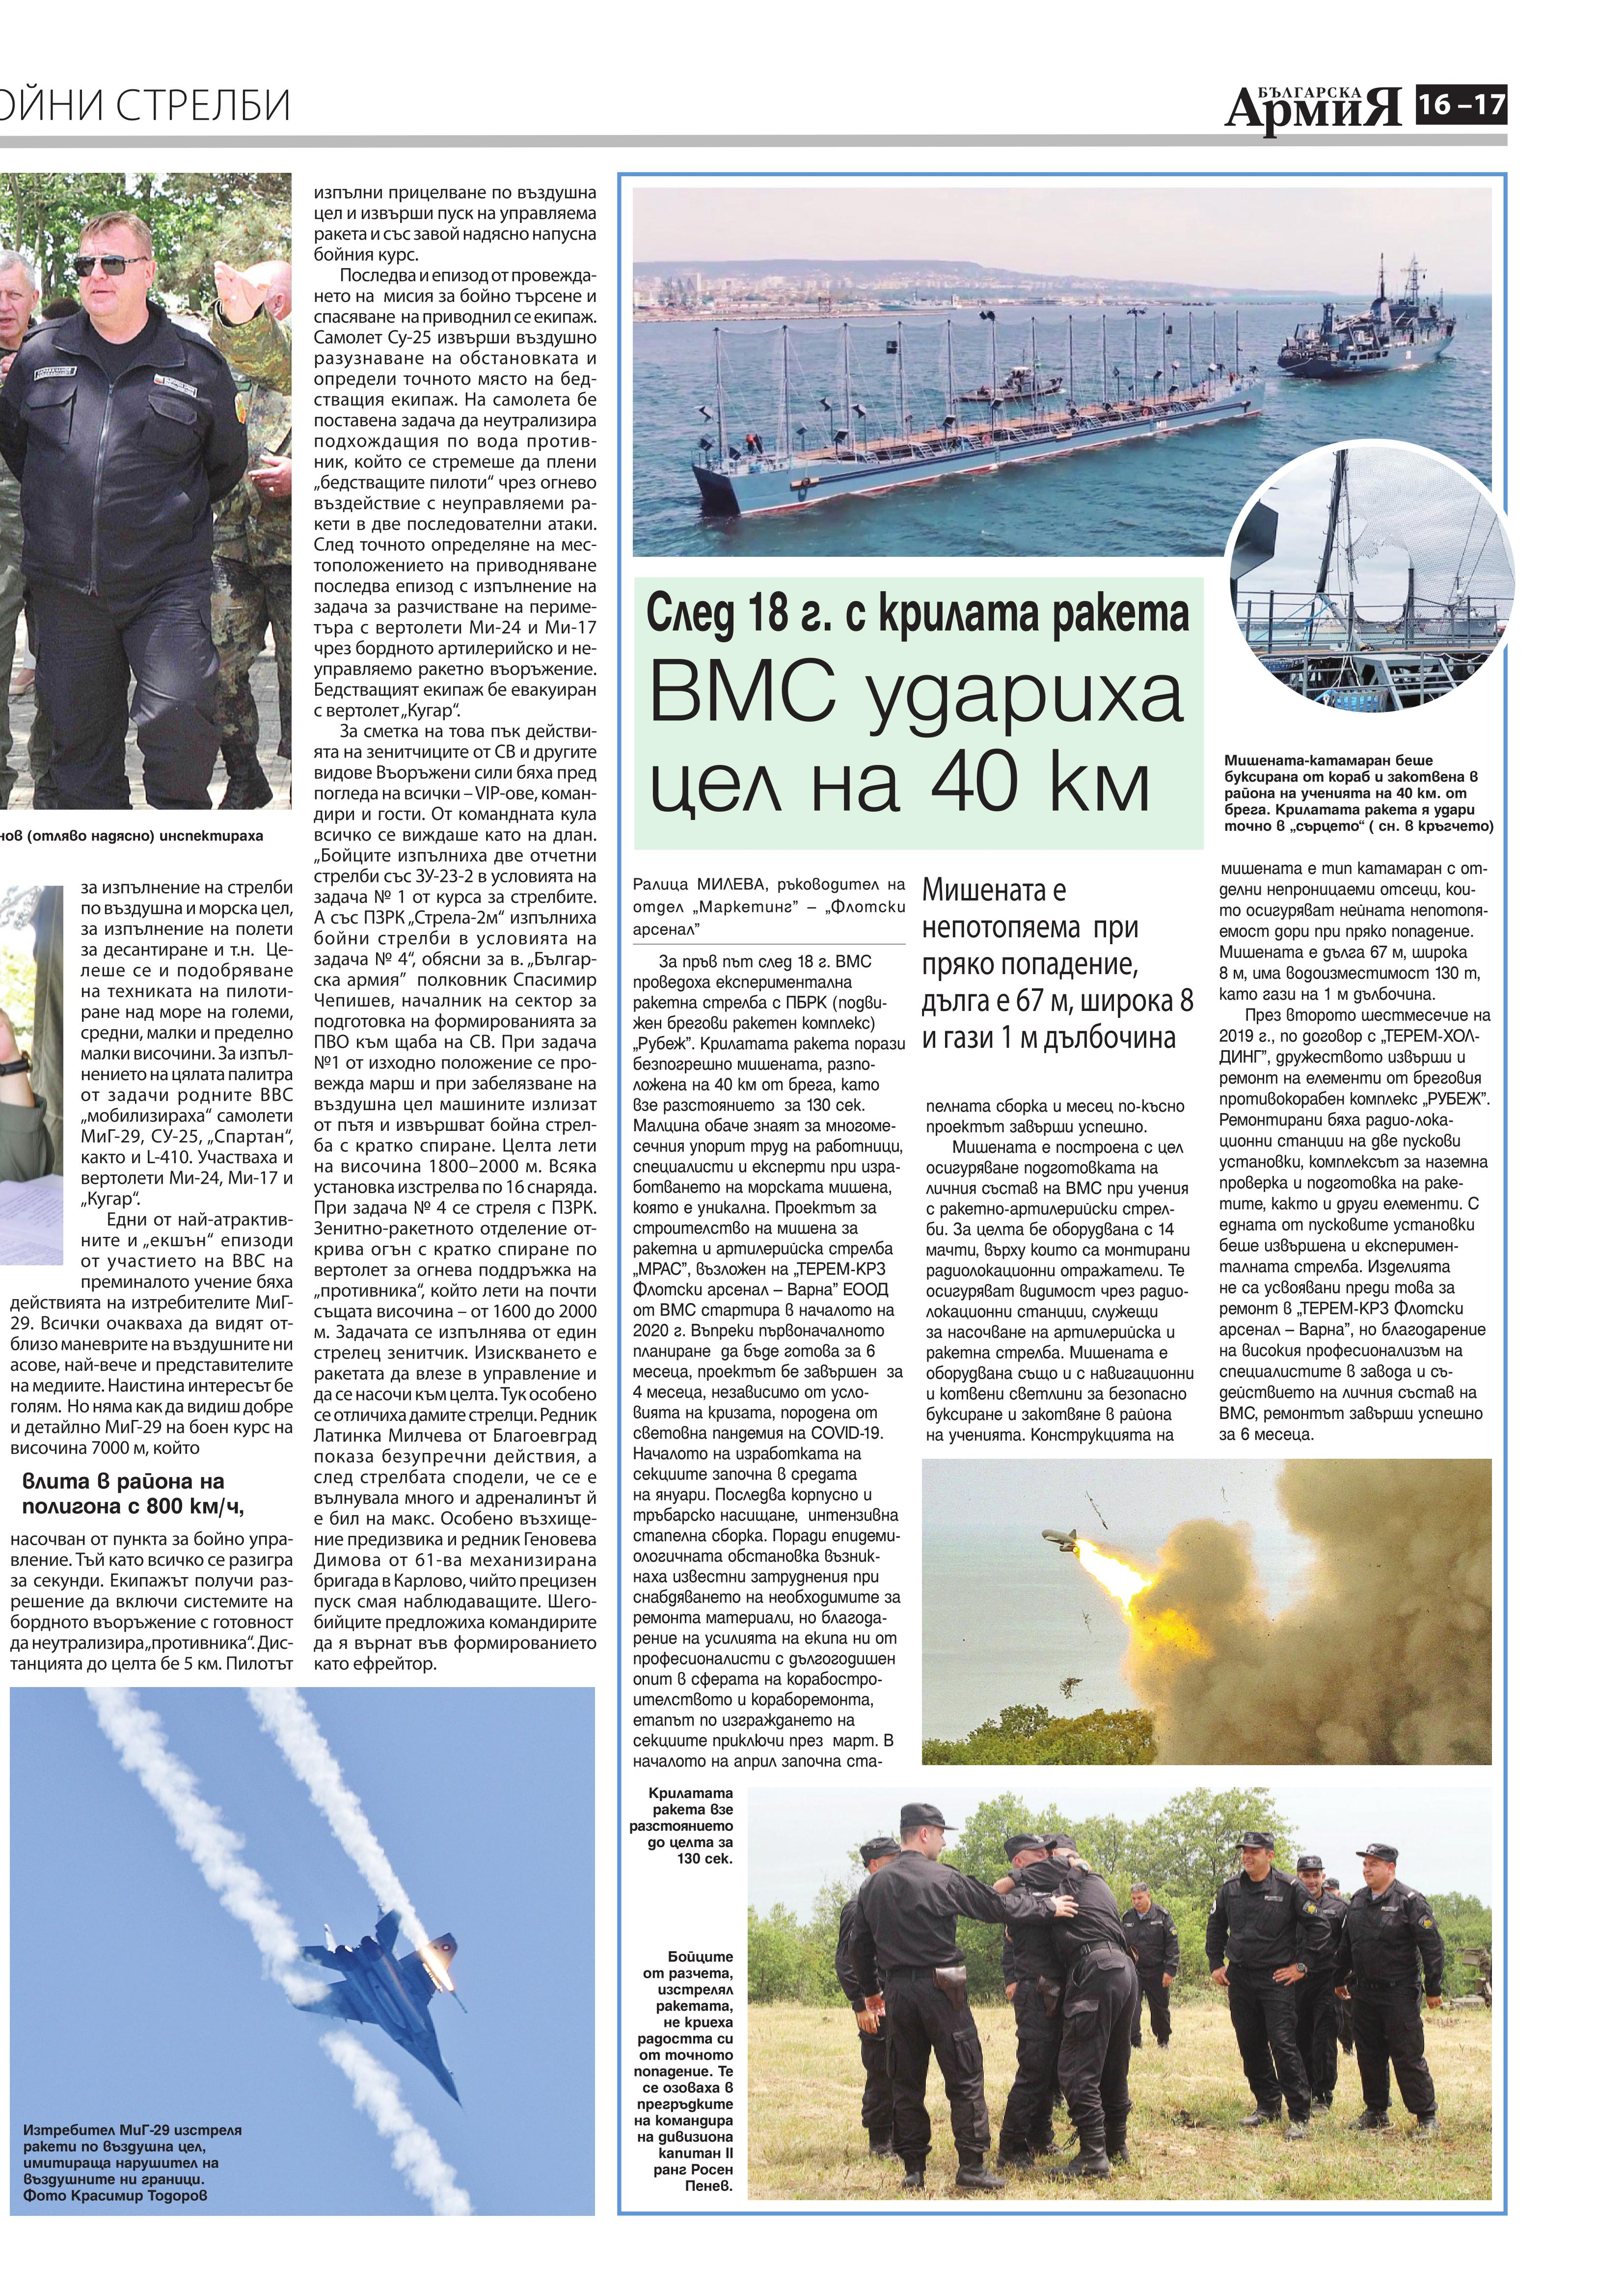 https://www.armymedia.bg/wp-content/uploads/2015/06/17.page1_-144.jpg